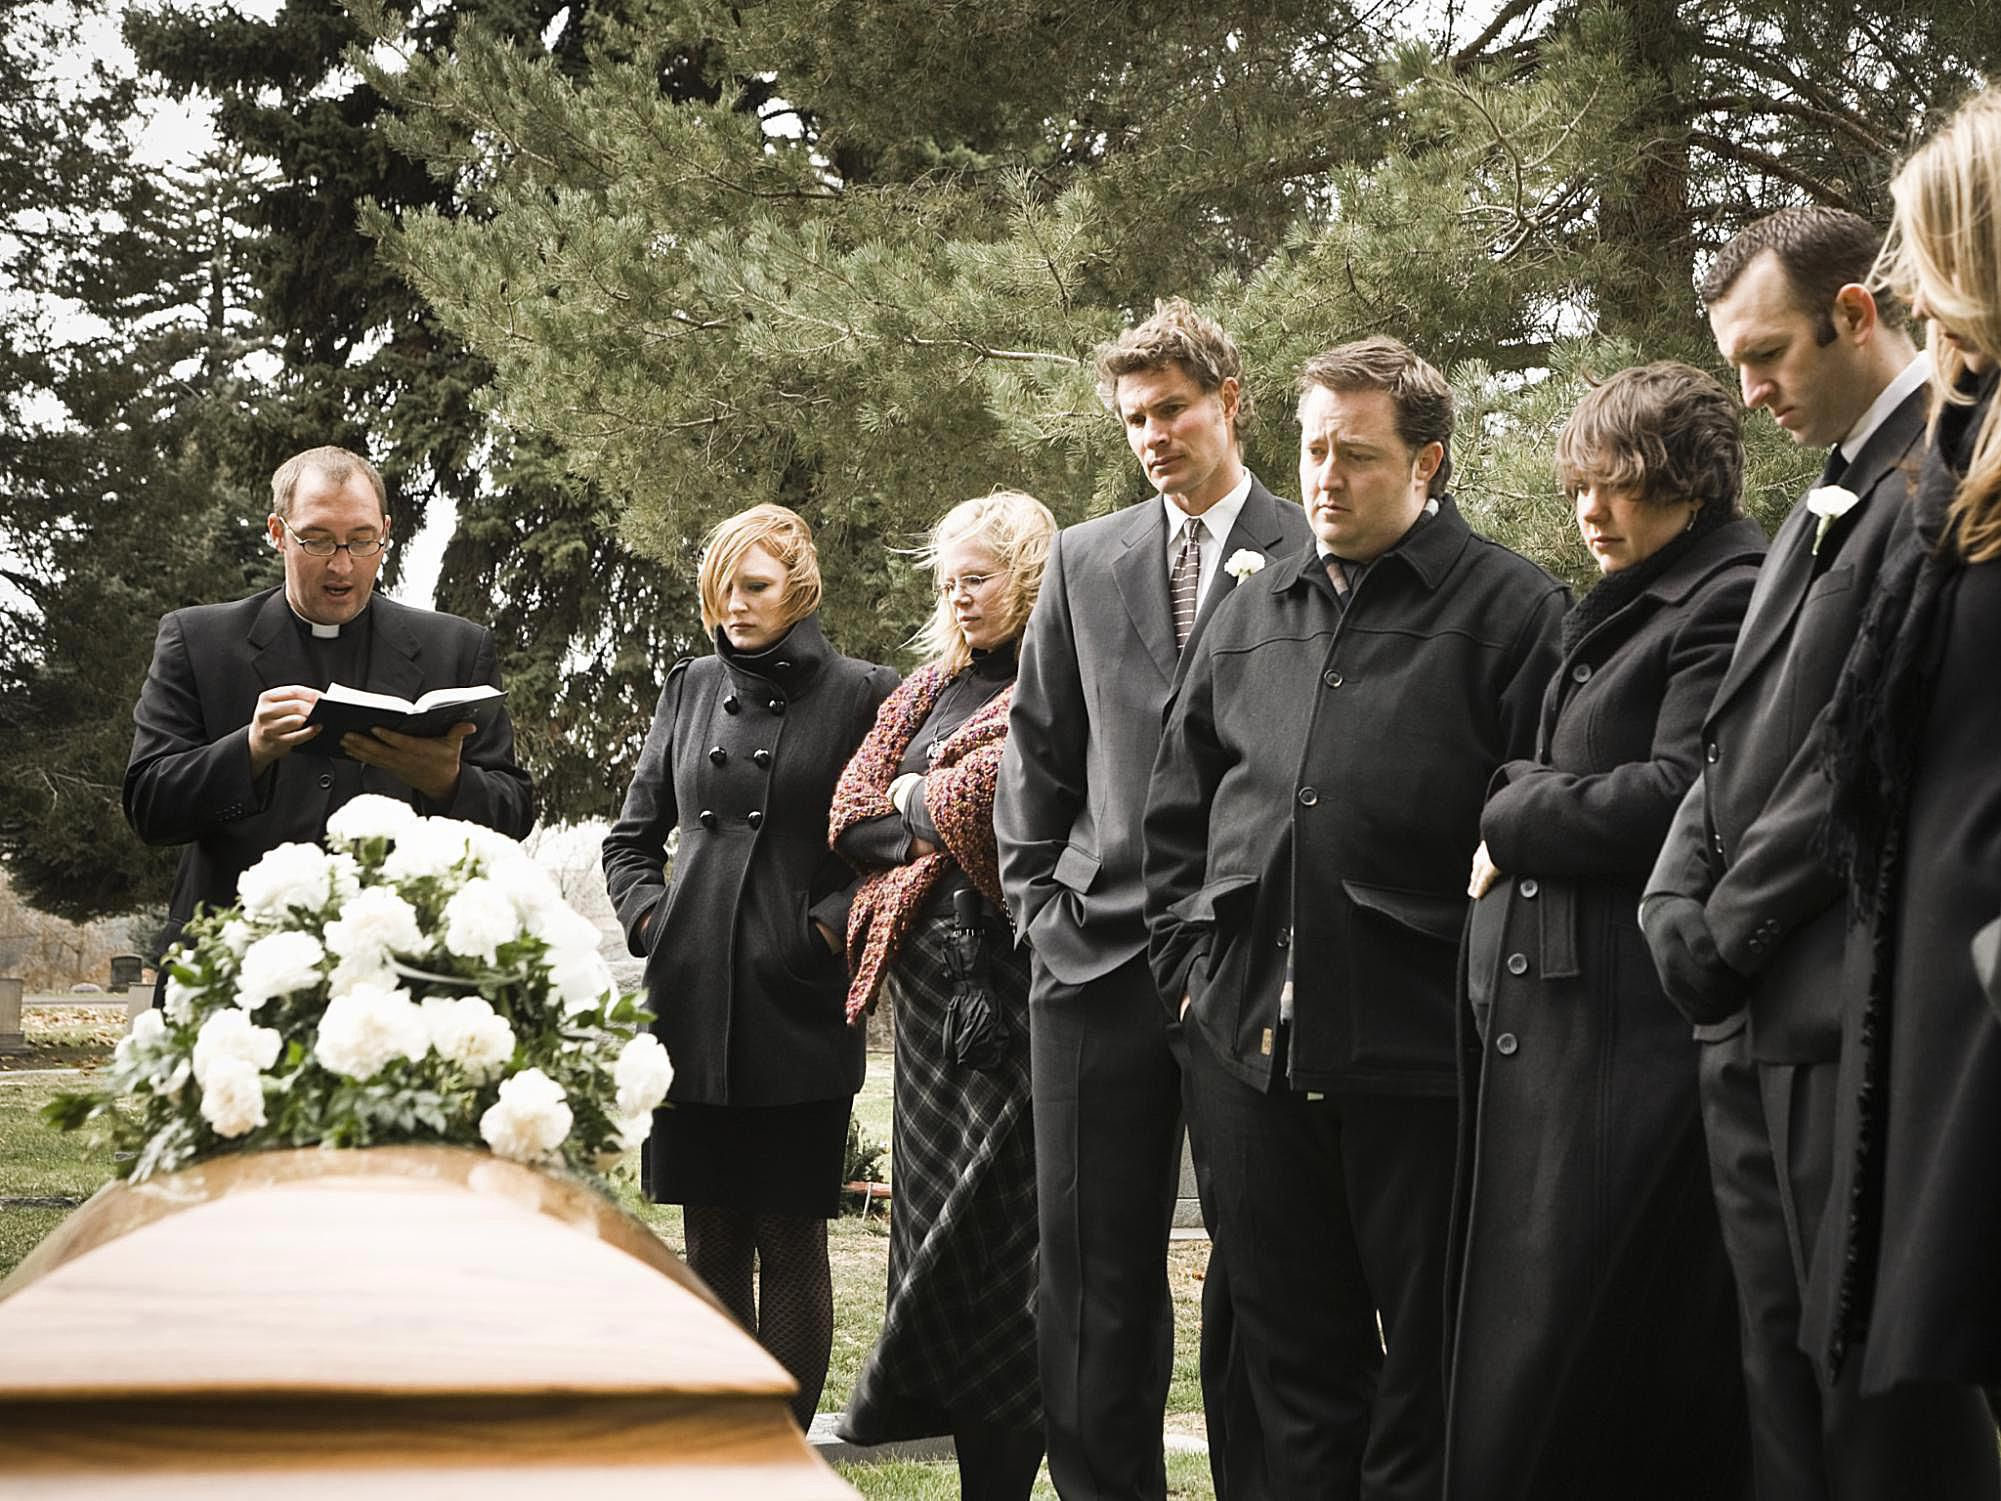 How To Prevent Awkwardness At A Funeral